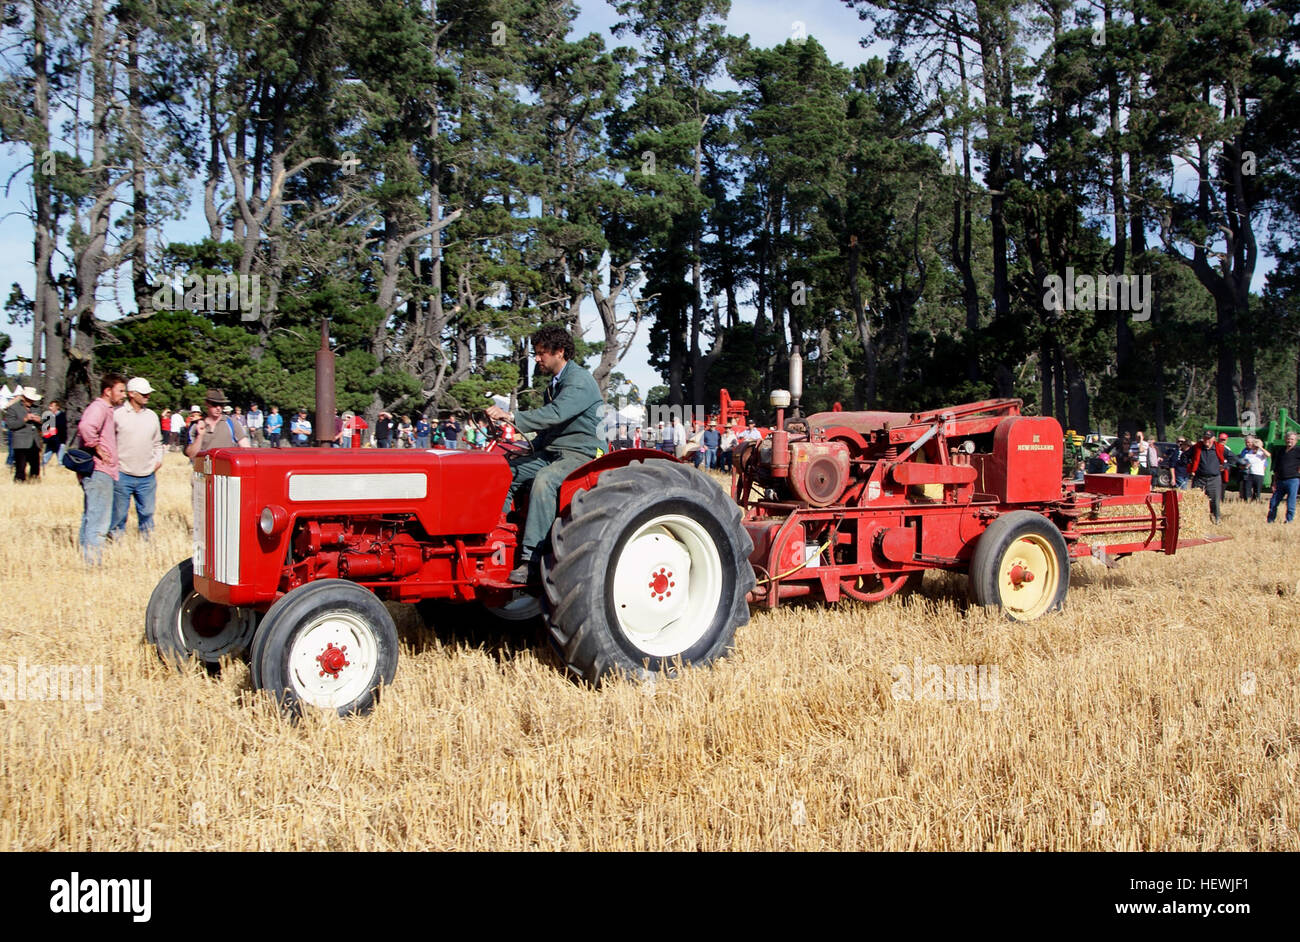 New Holland is a global brand of agricultural machinery